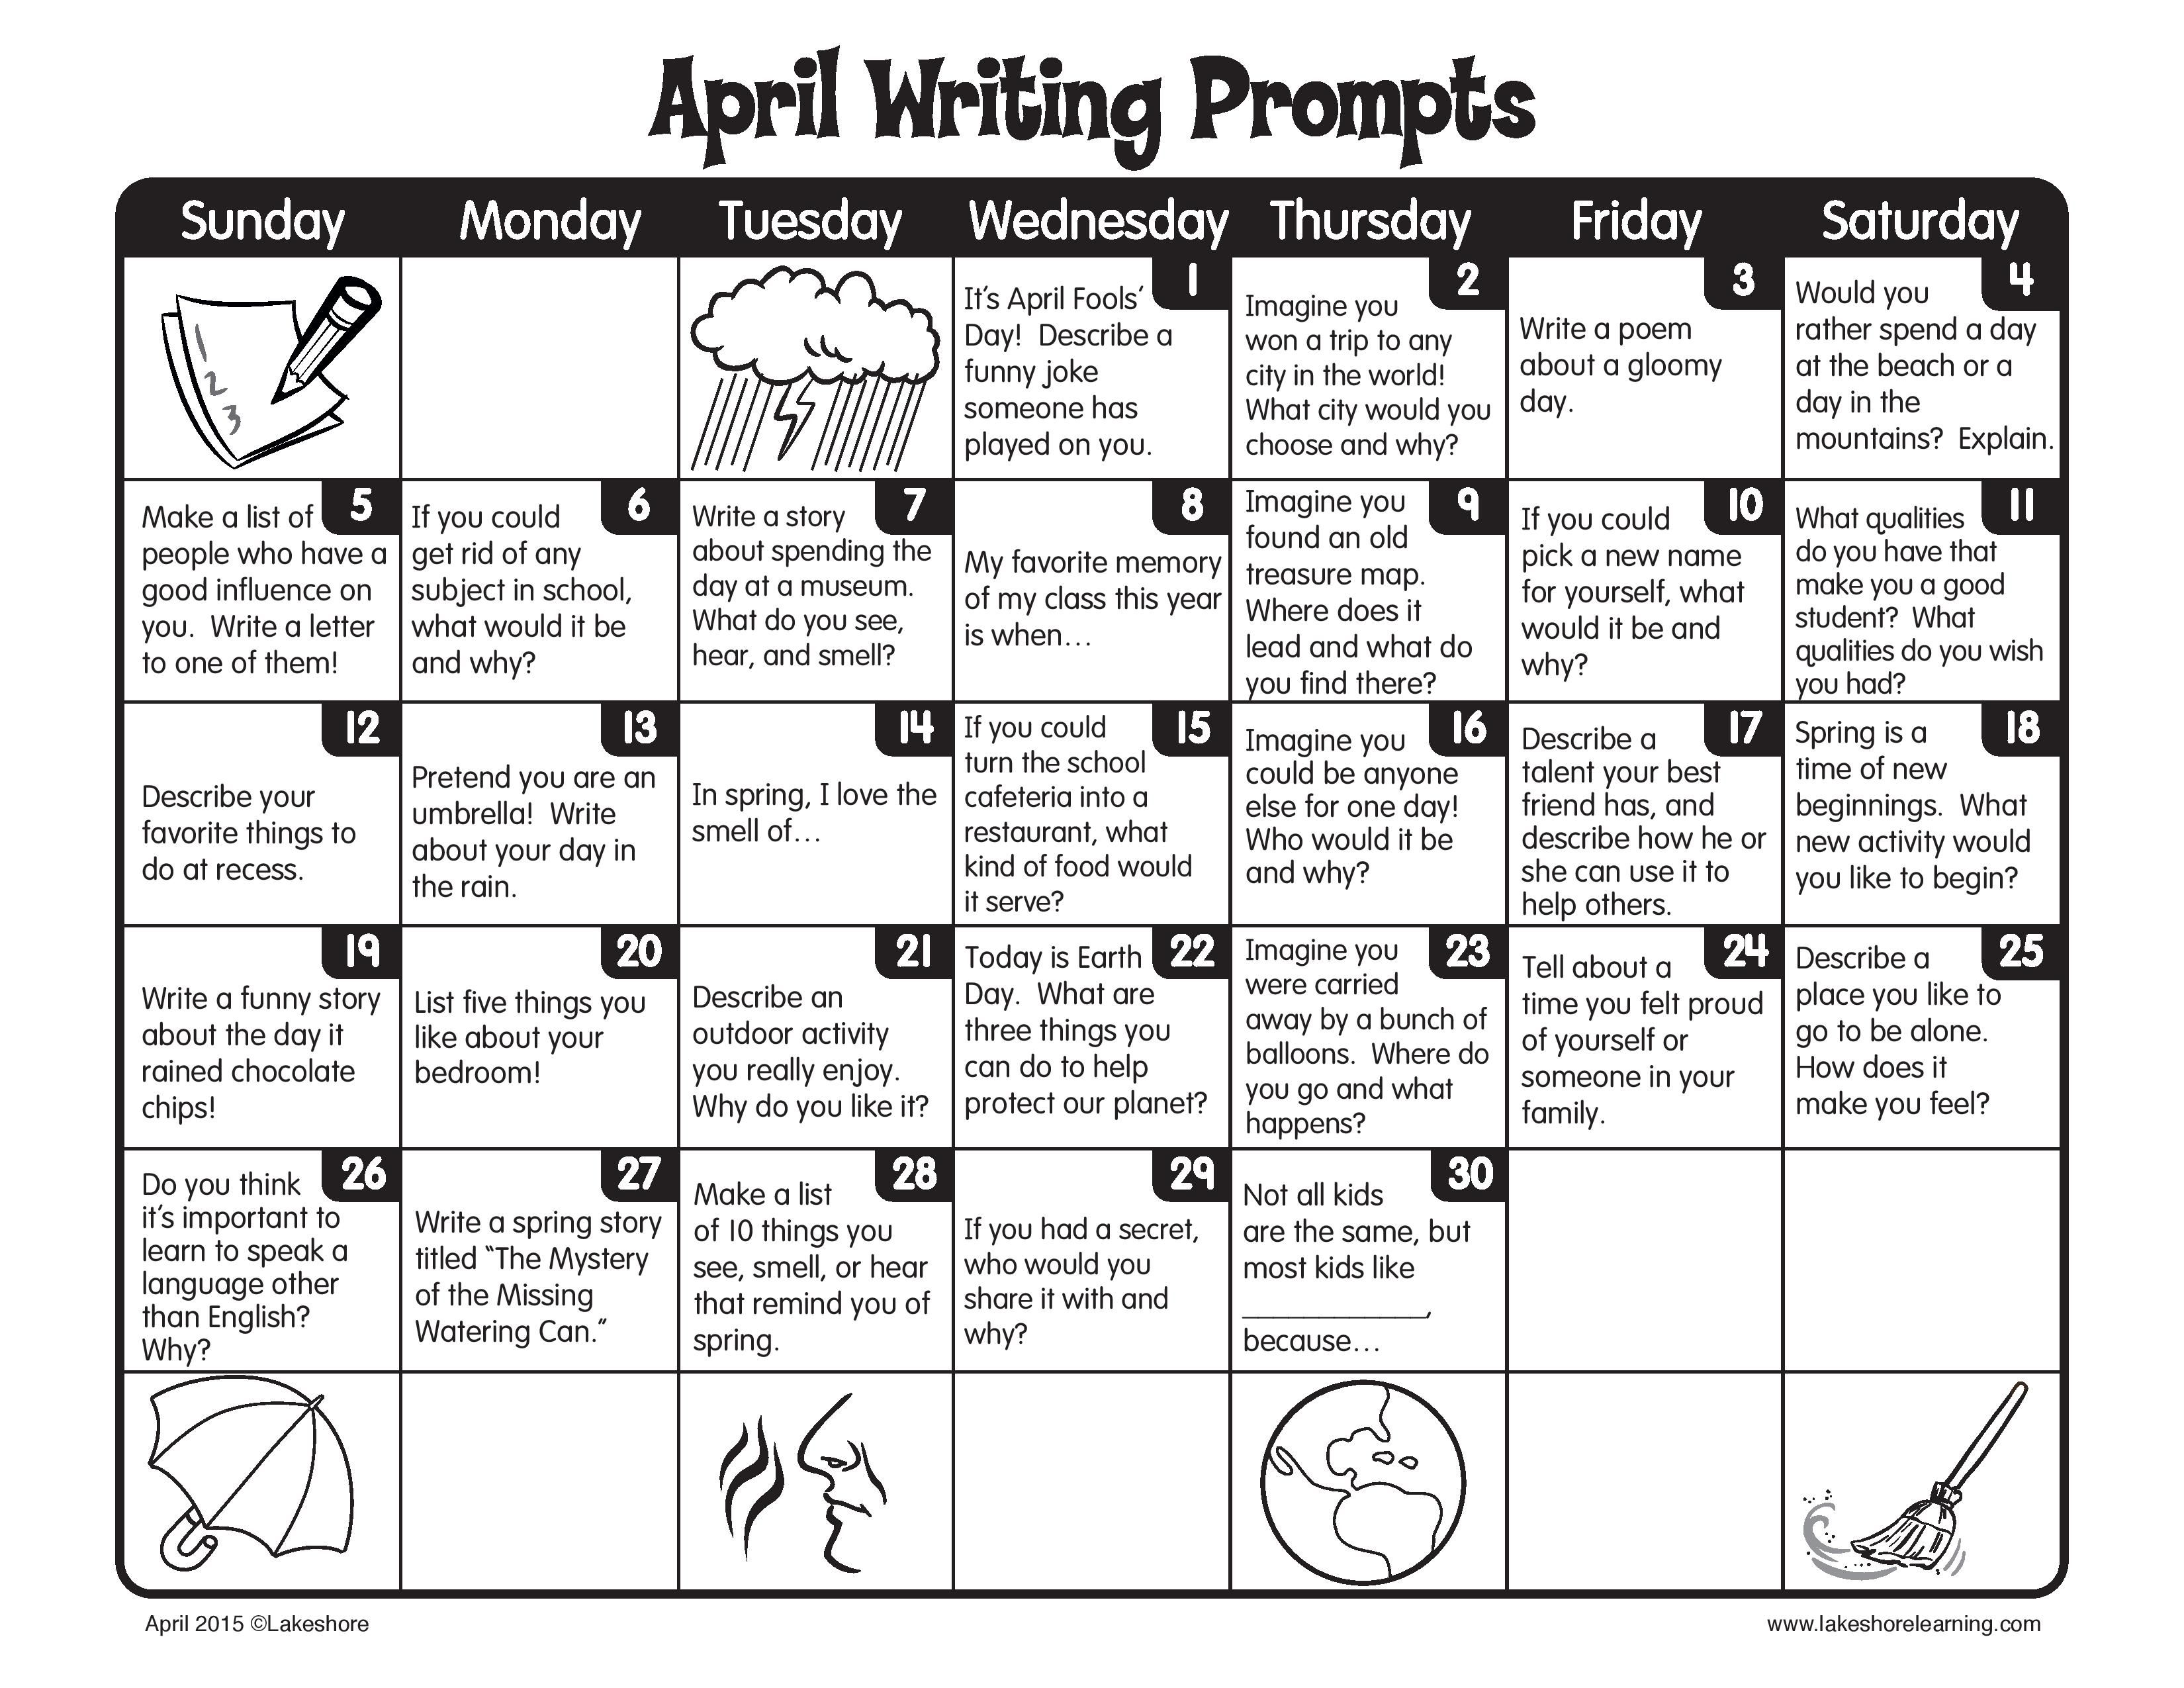 April Showers Bring New Daily Writing Prompts